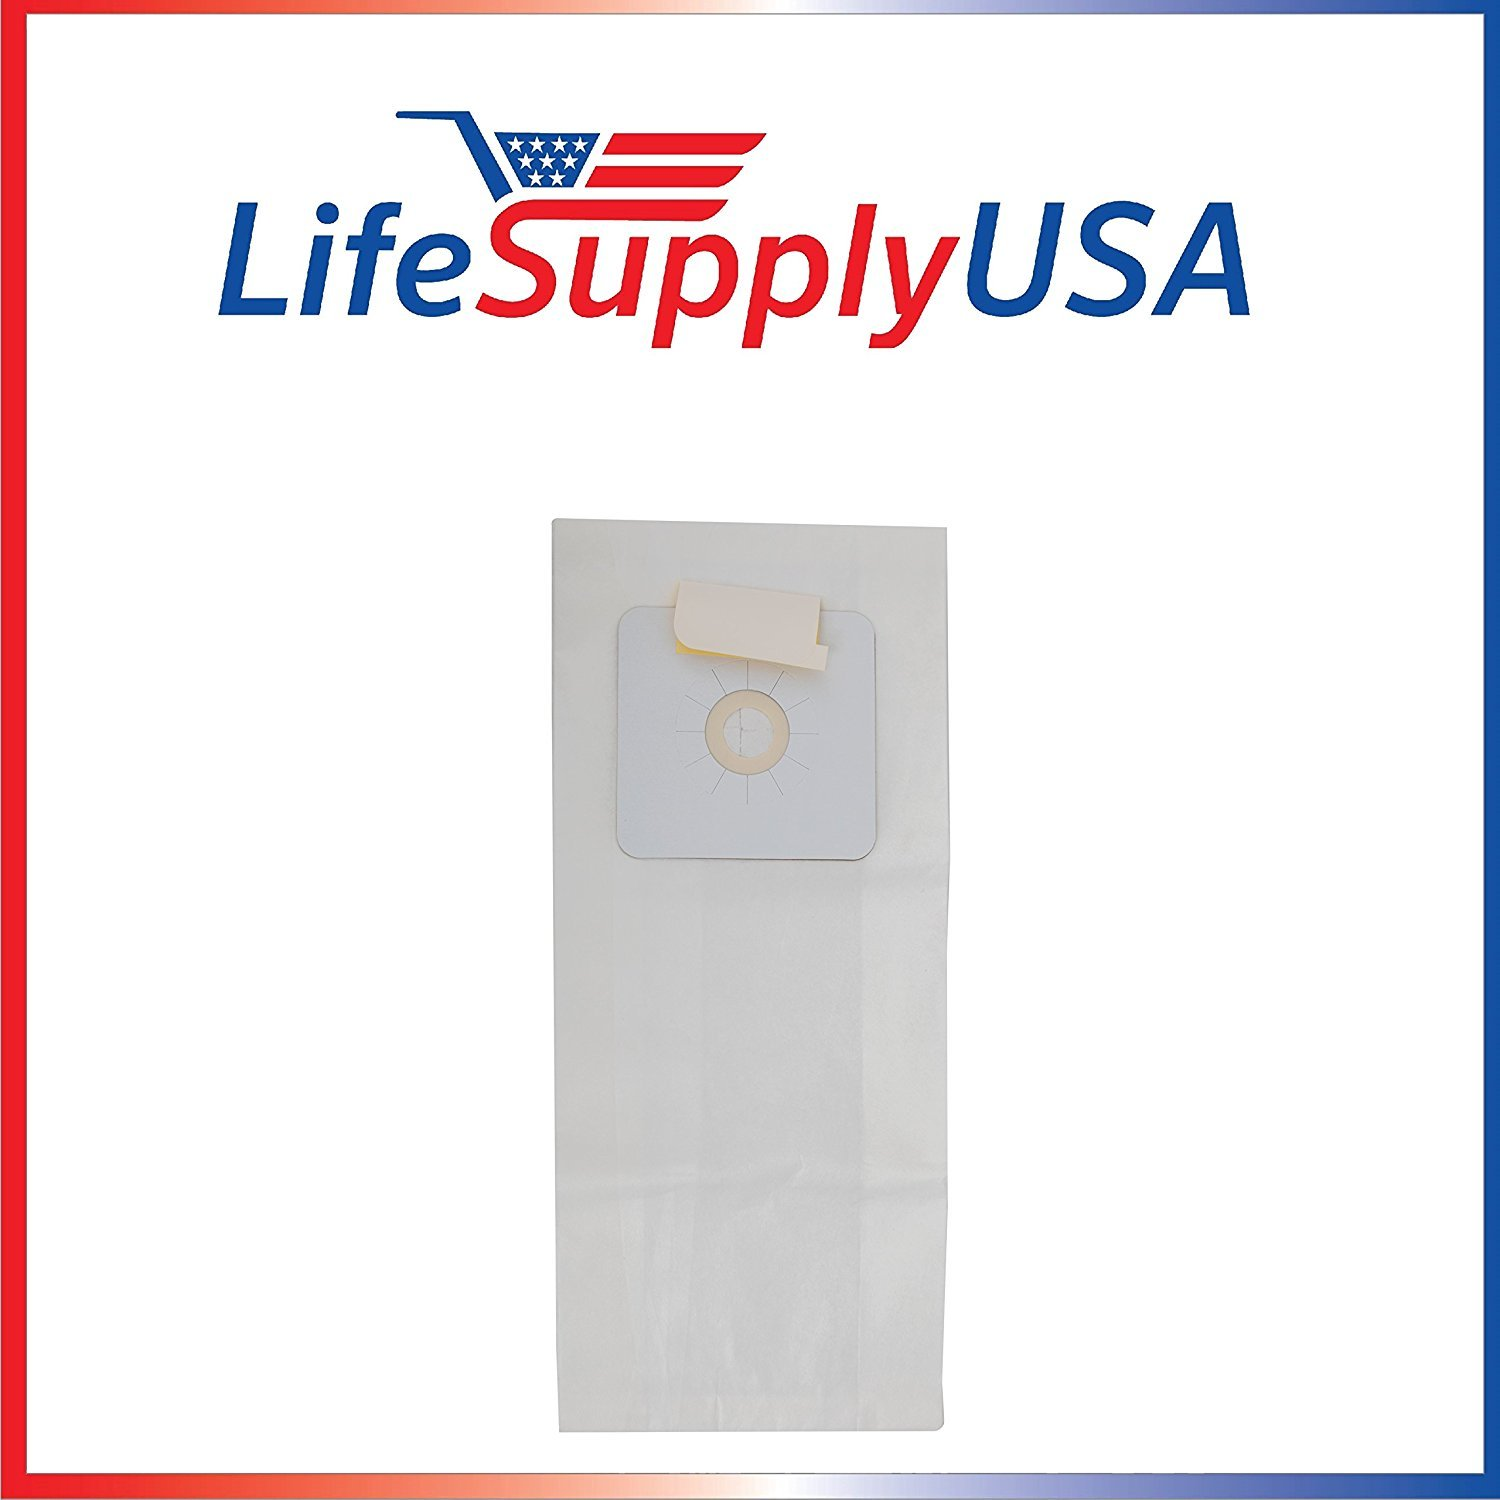 50 Packs of 3 (150 pcs) Central Vacuum Bags for Nutone Beam and many others by LifeSupplyUSA